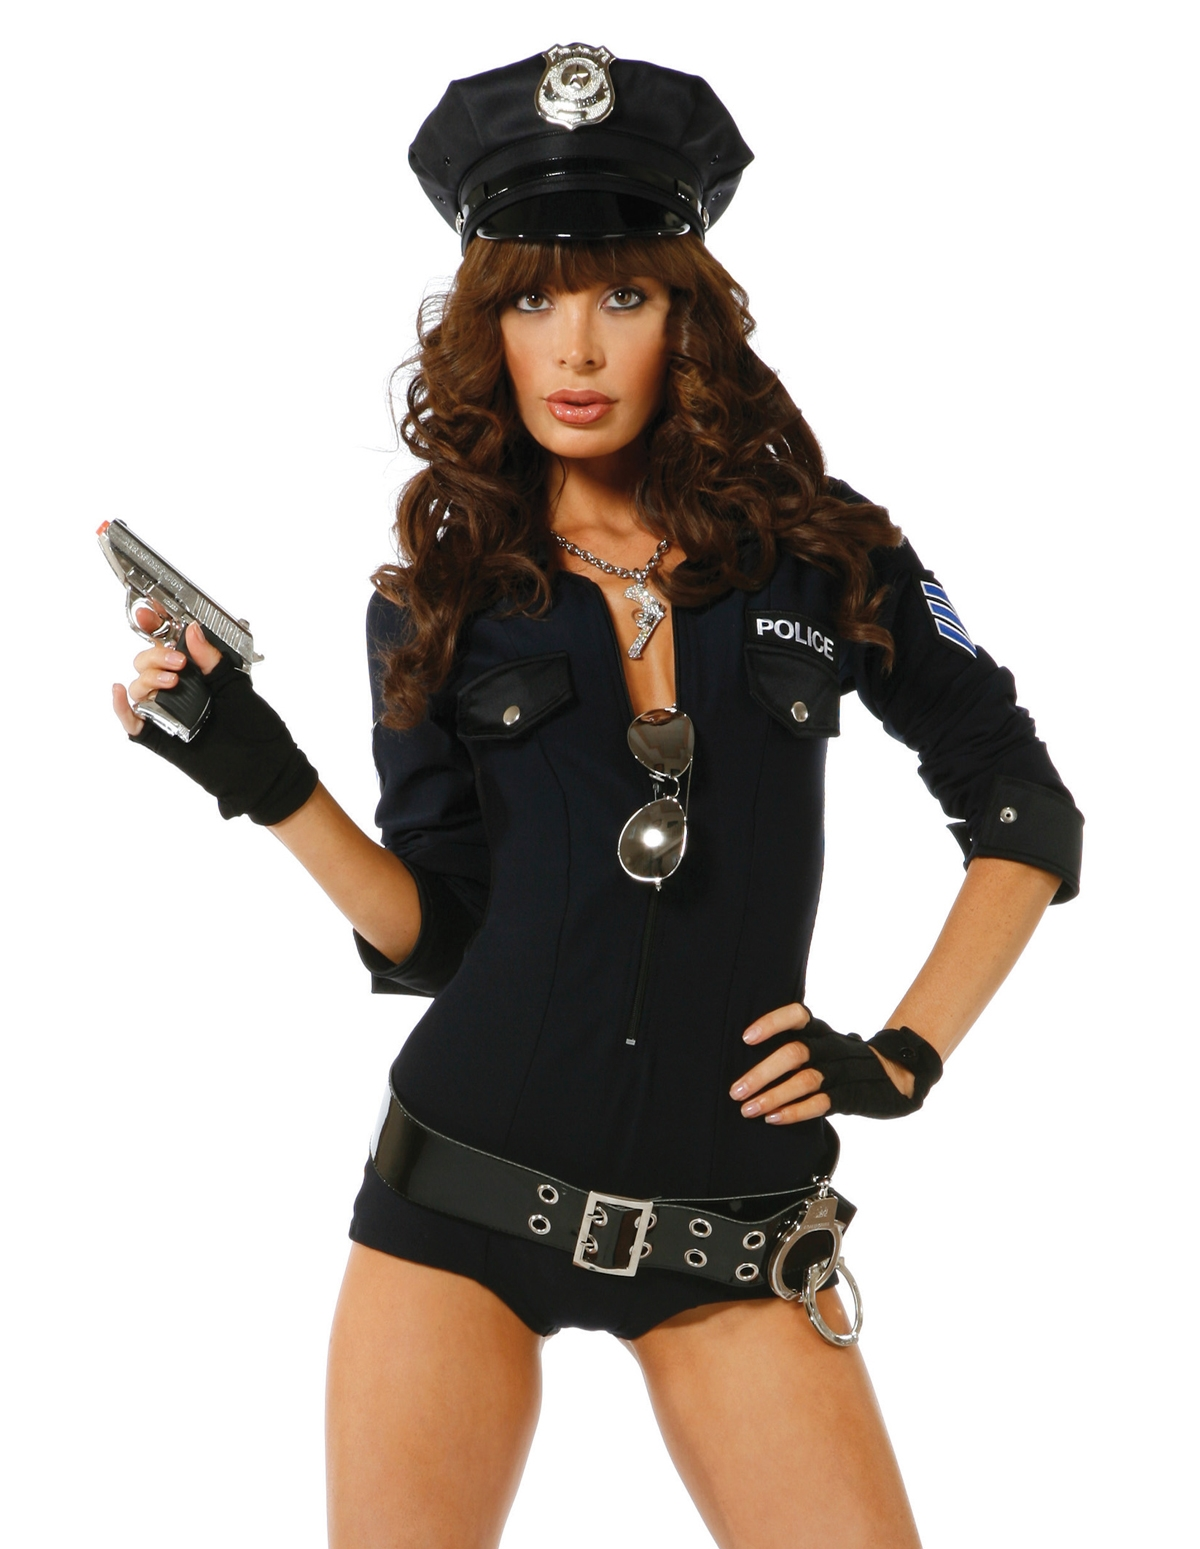 Power Police Costume